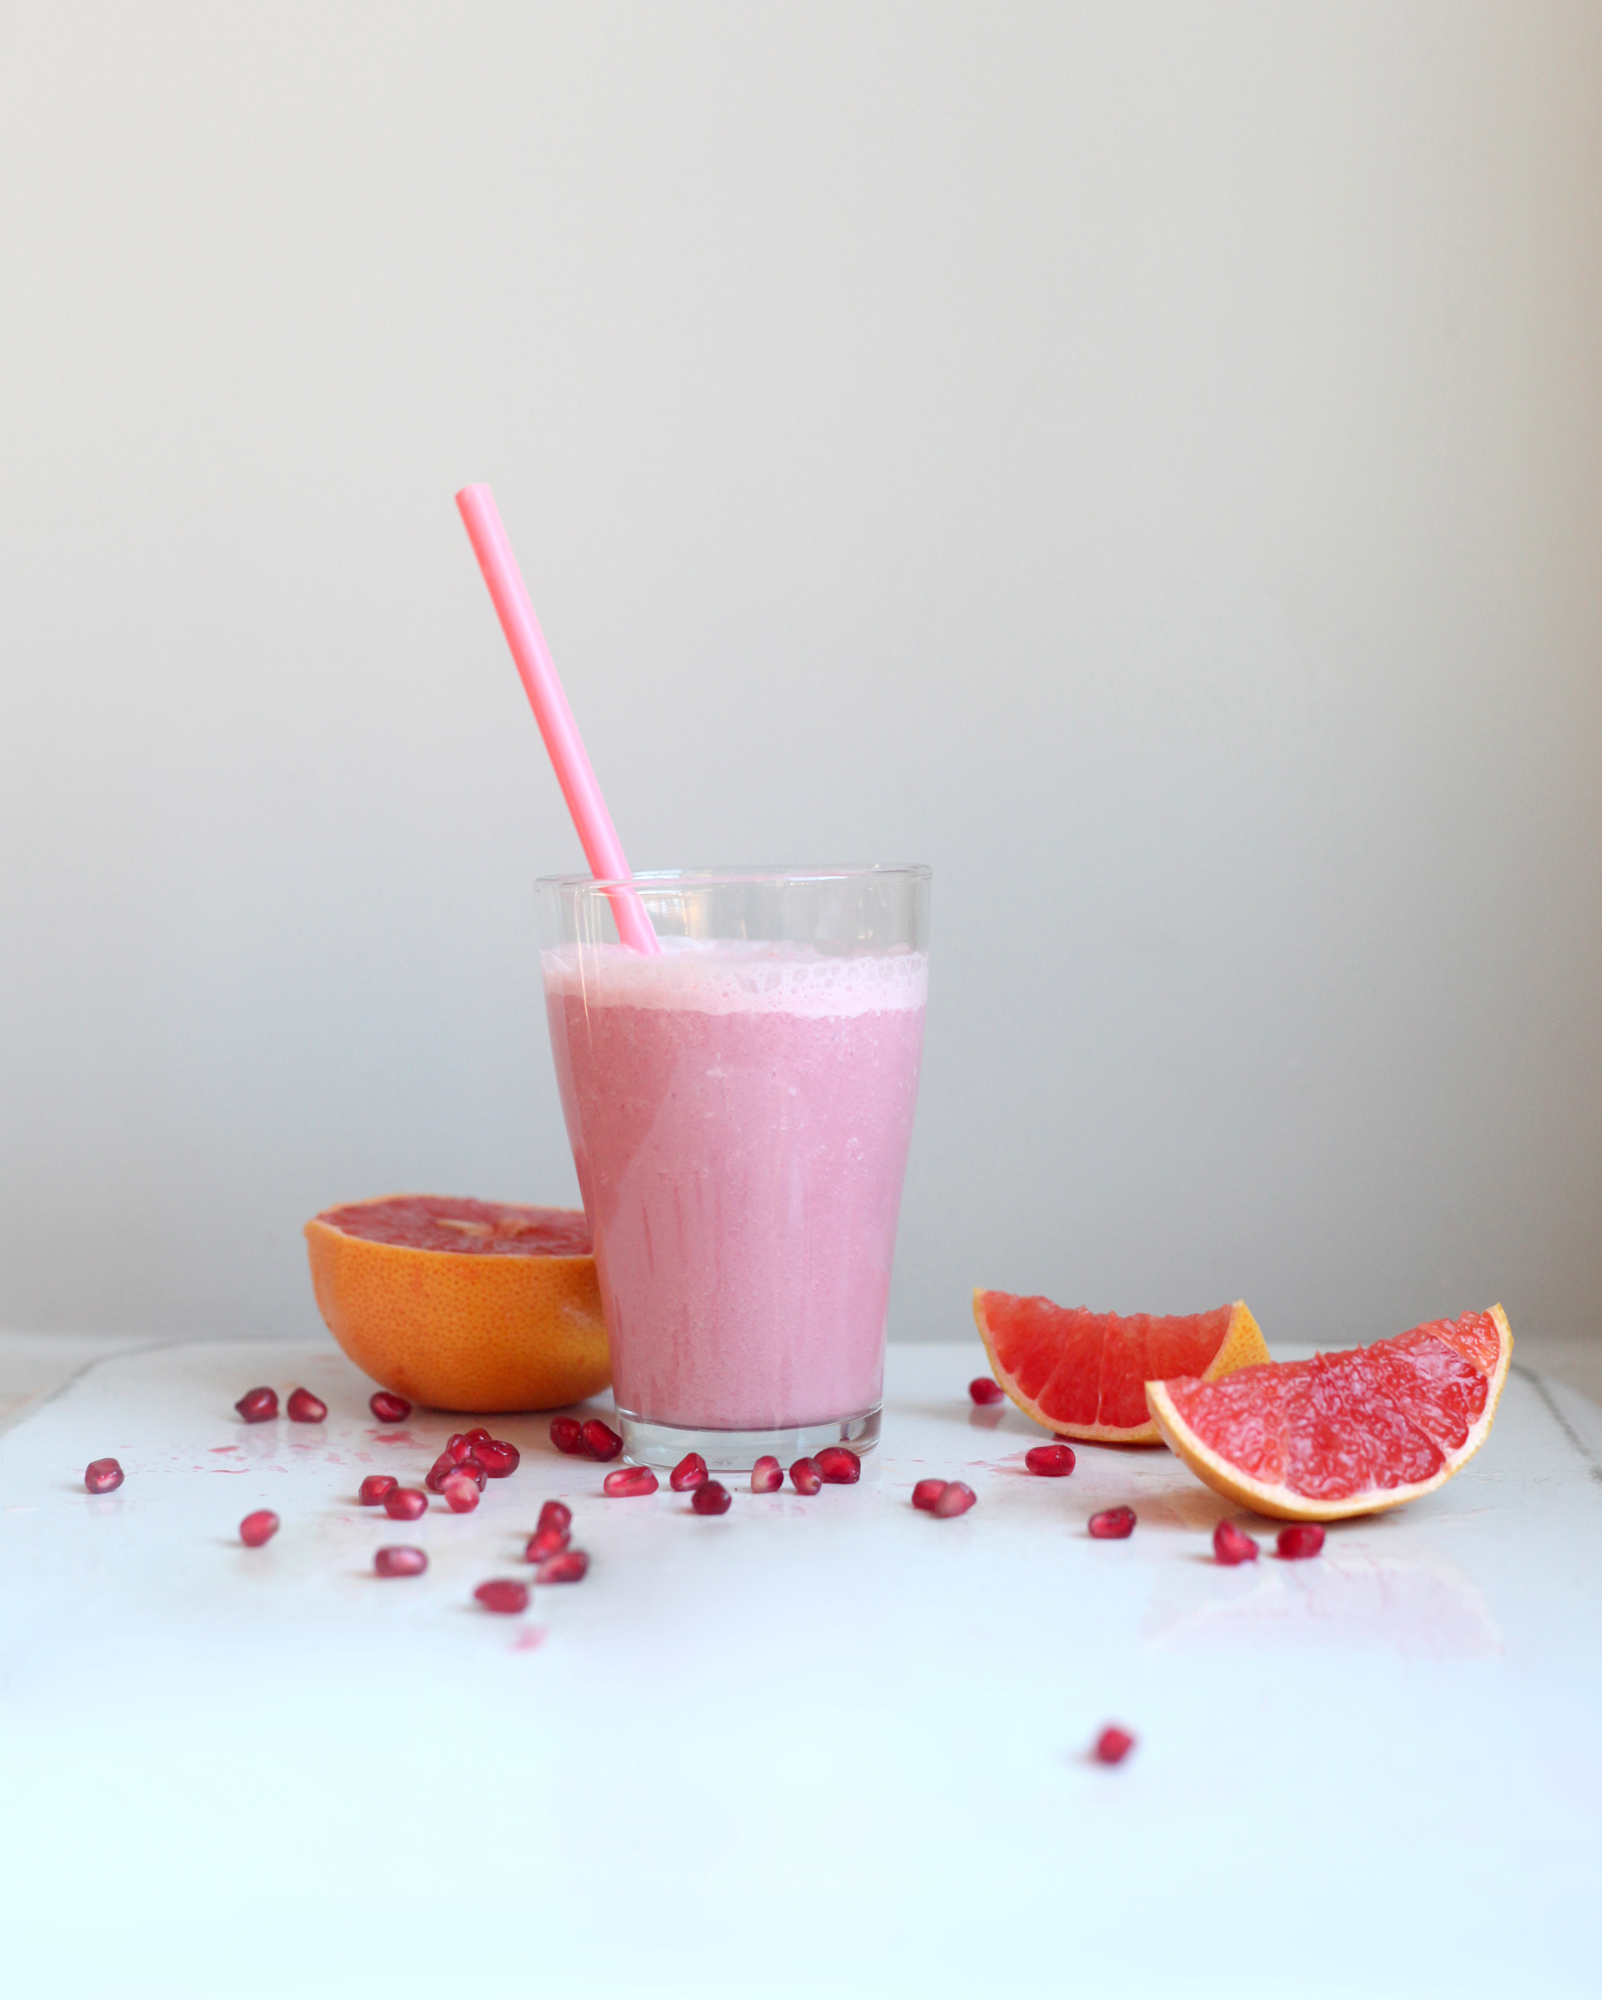 pomegranate-pink-grapefruit-beet-smoothie